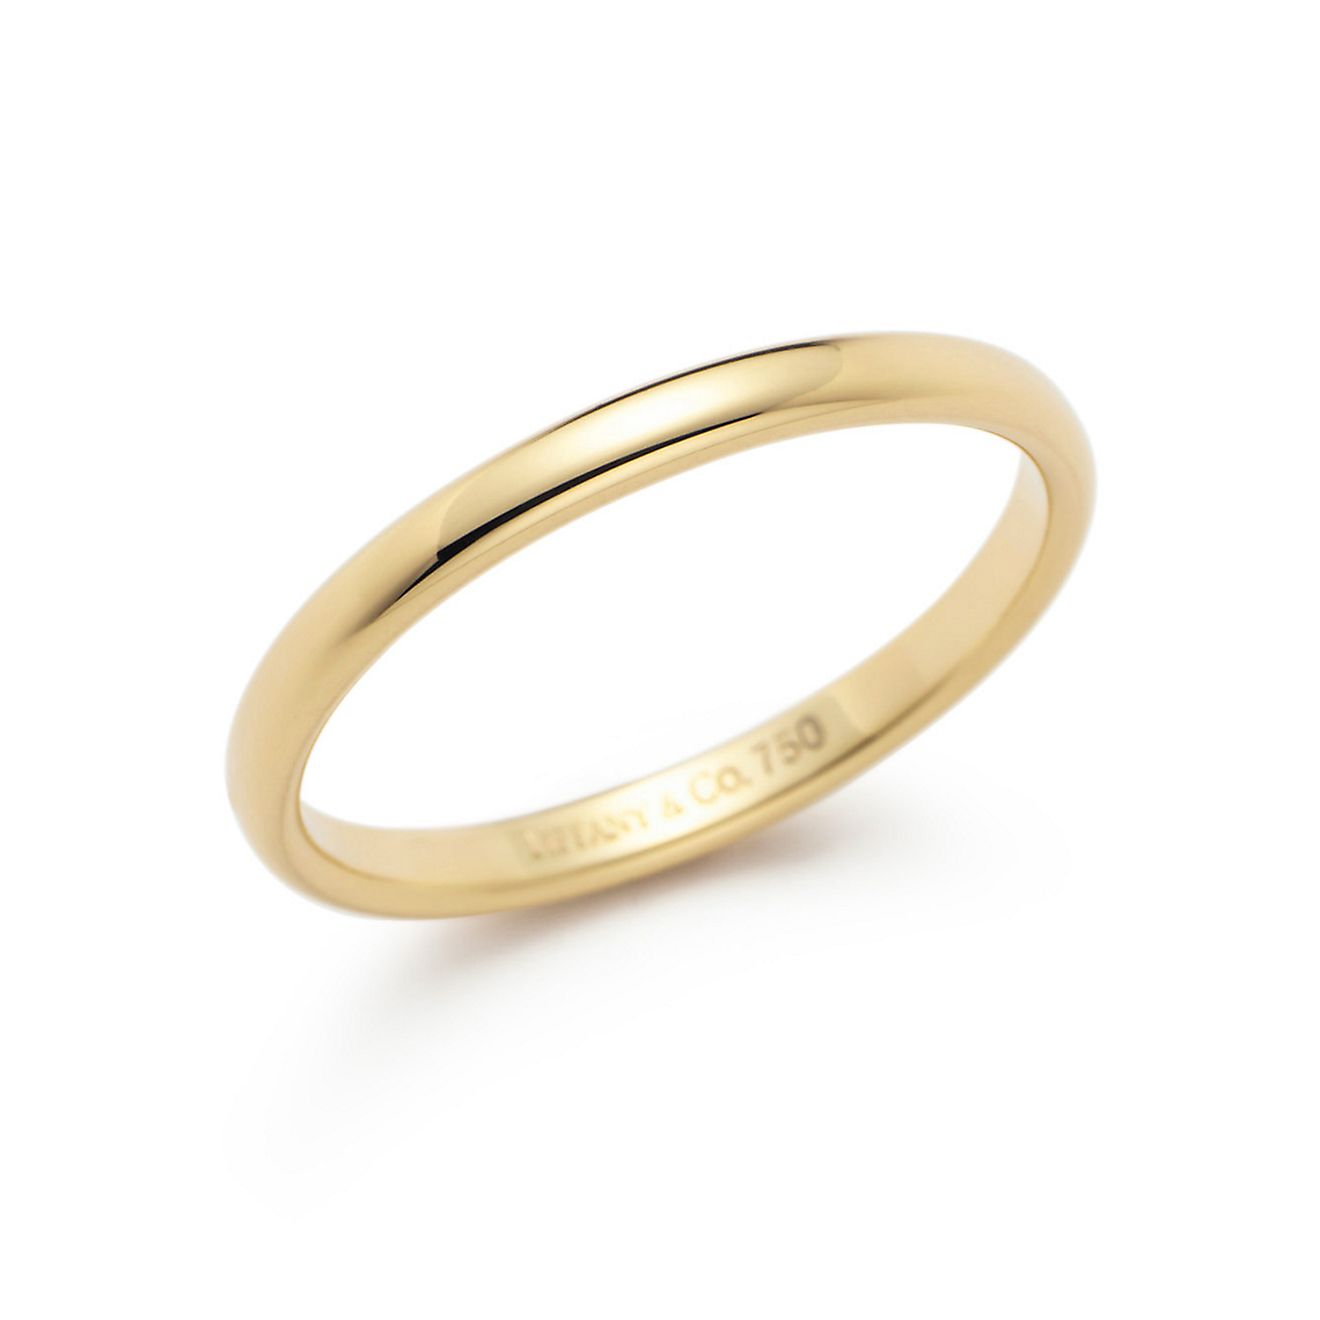 "Tiffany  Co. | Item | Print | Lucidaâ""¢ wedding band ring in 18k gold ..."